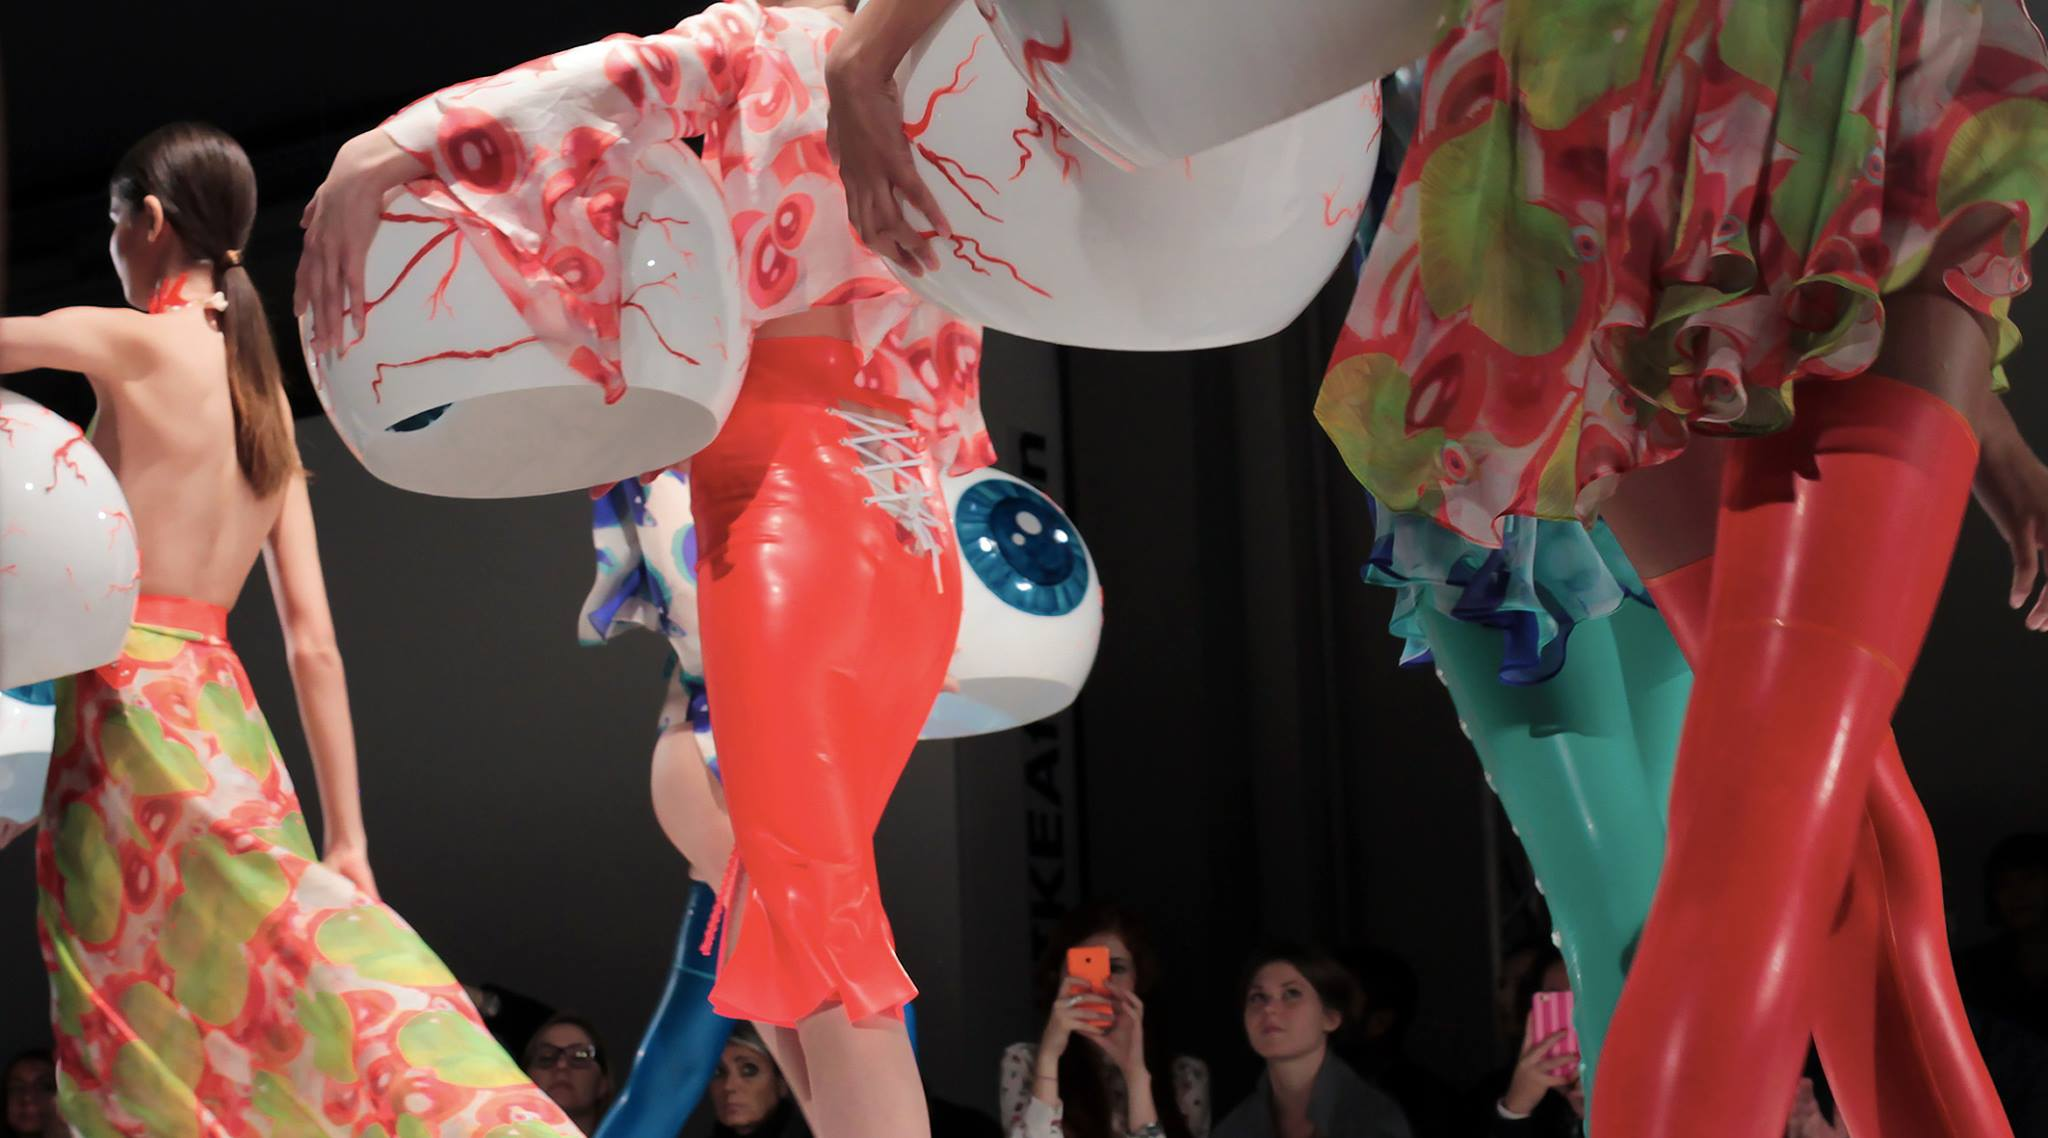 Ikea's First-Ever Fashion Show Included Break Dancing and Massive Eyeballs